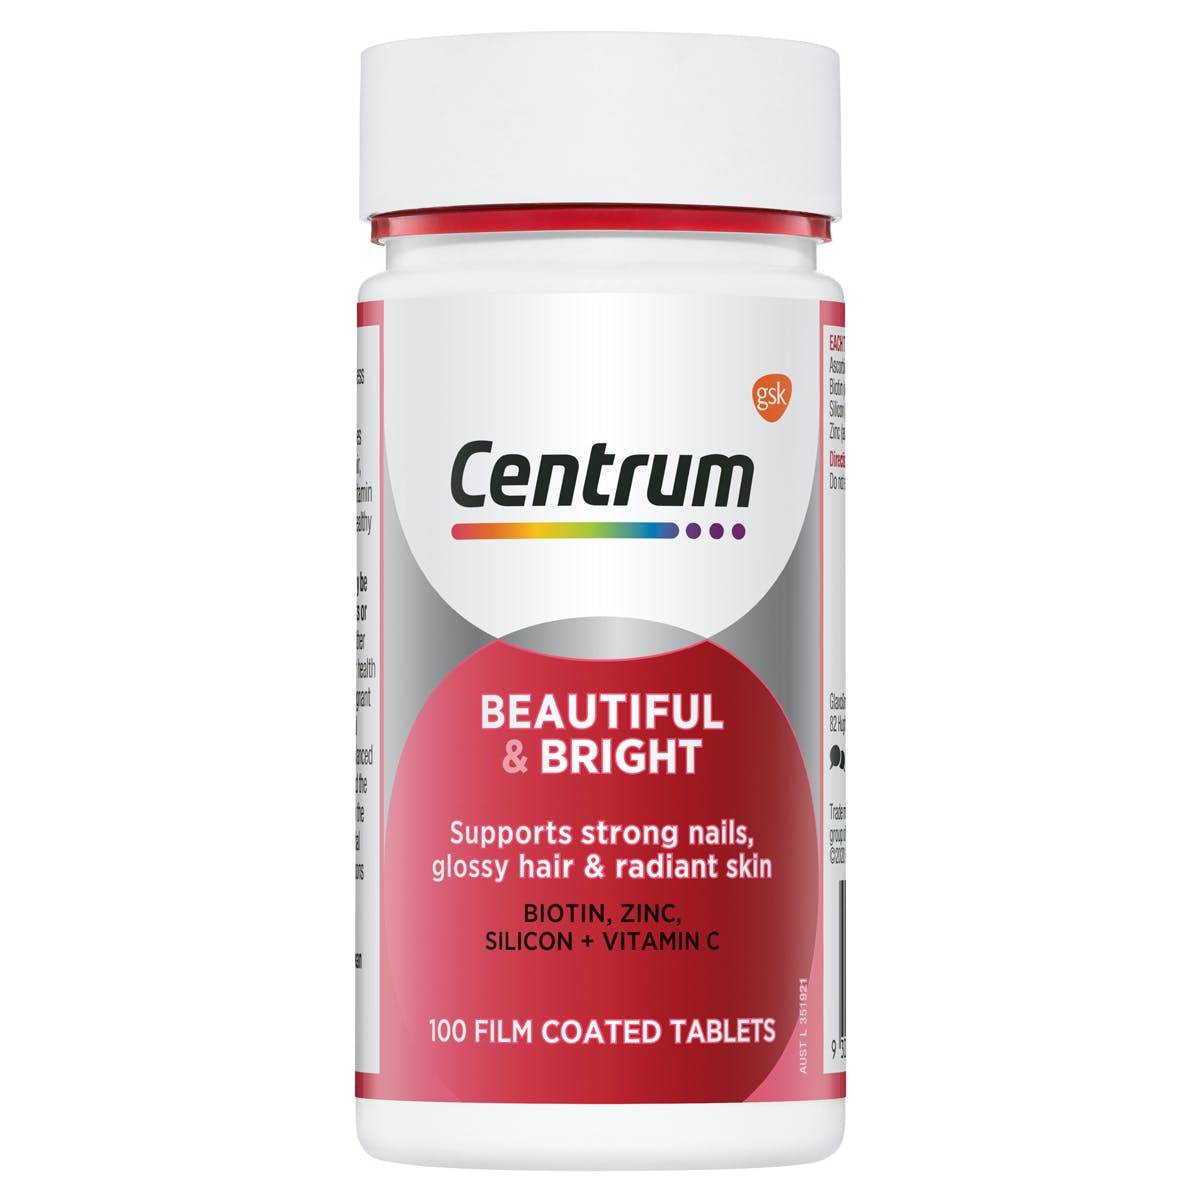 Bottle of Beautiful & Bright from the Centrum Benefits Blend (50 tablets).